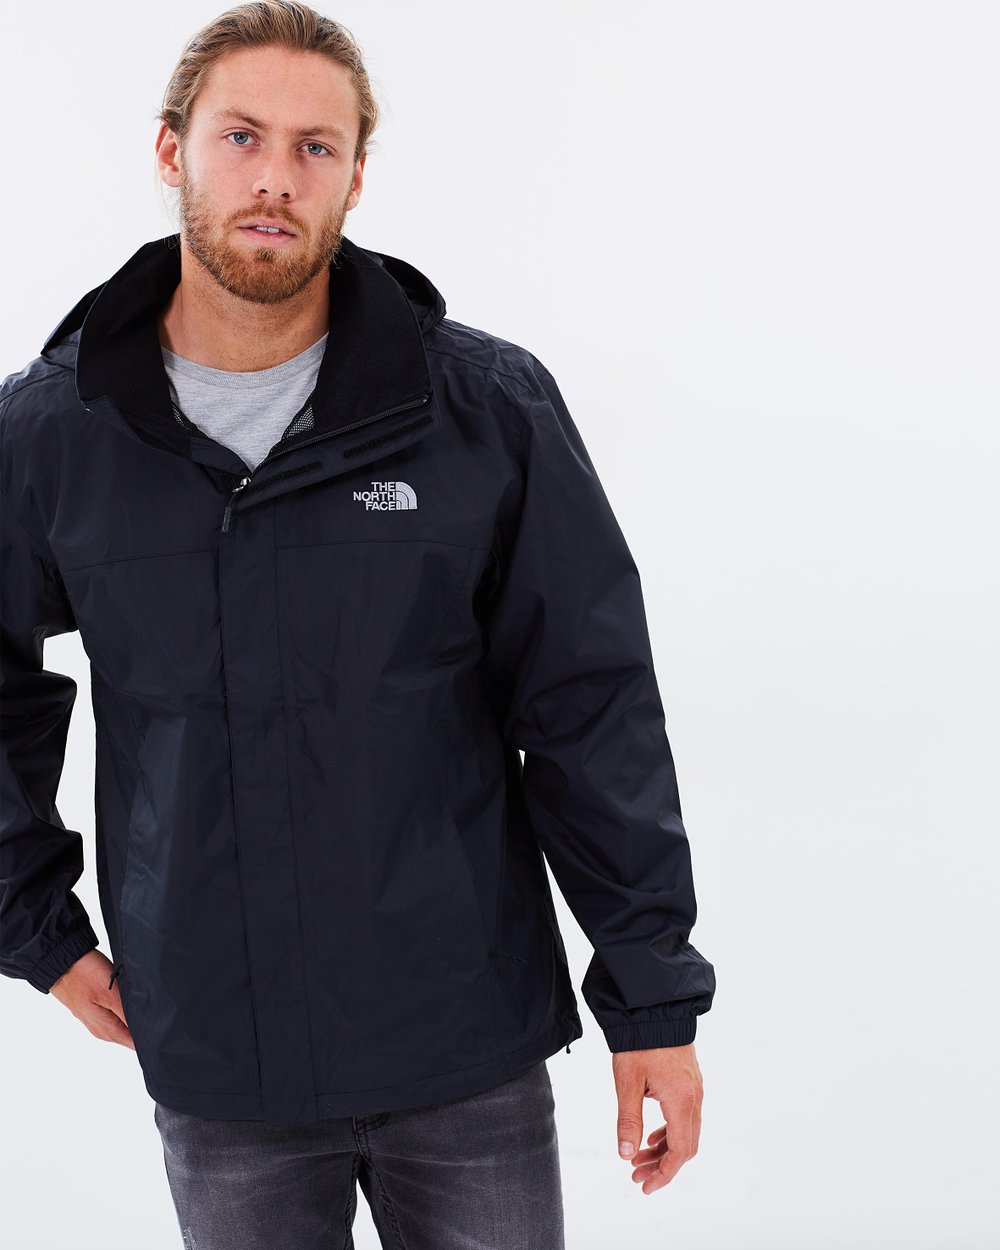 Men s Resolve 2 Jacket by The North Face Online  12c4f55ff